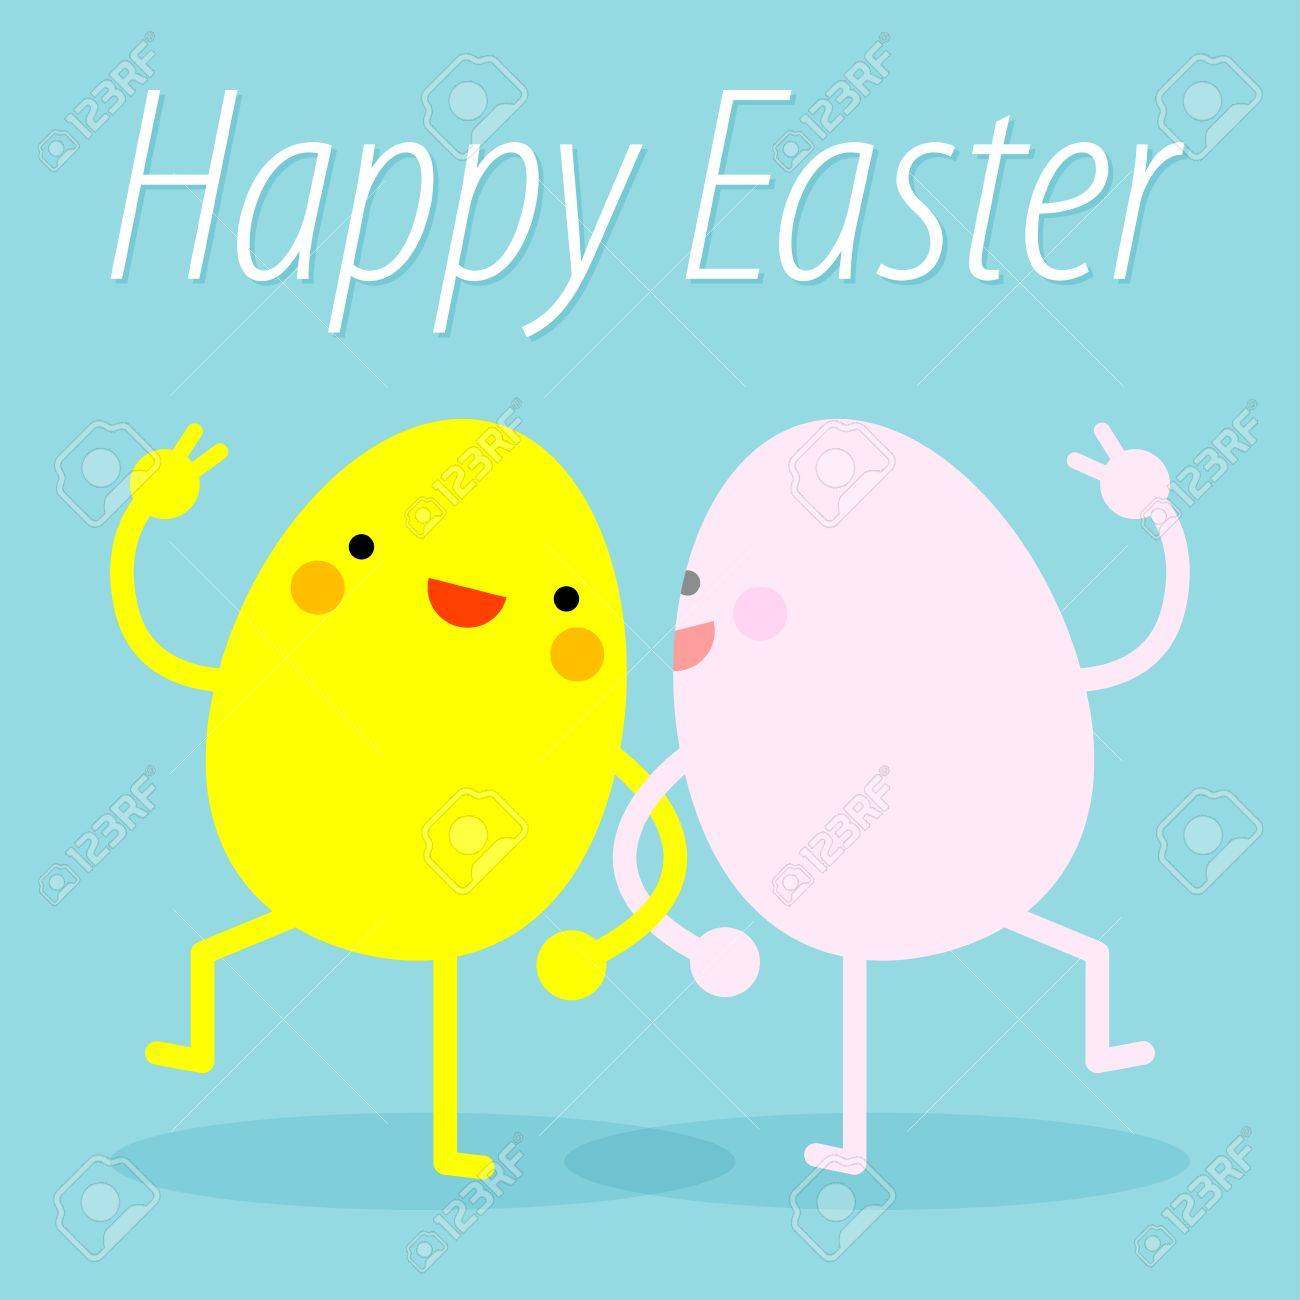 Happy Easter Easter Eggs Funny Easter Eggs Dance Happy Easter Royalty Free Cliparts Vectors And Stock Illustration Image 53173125